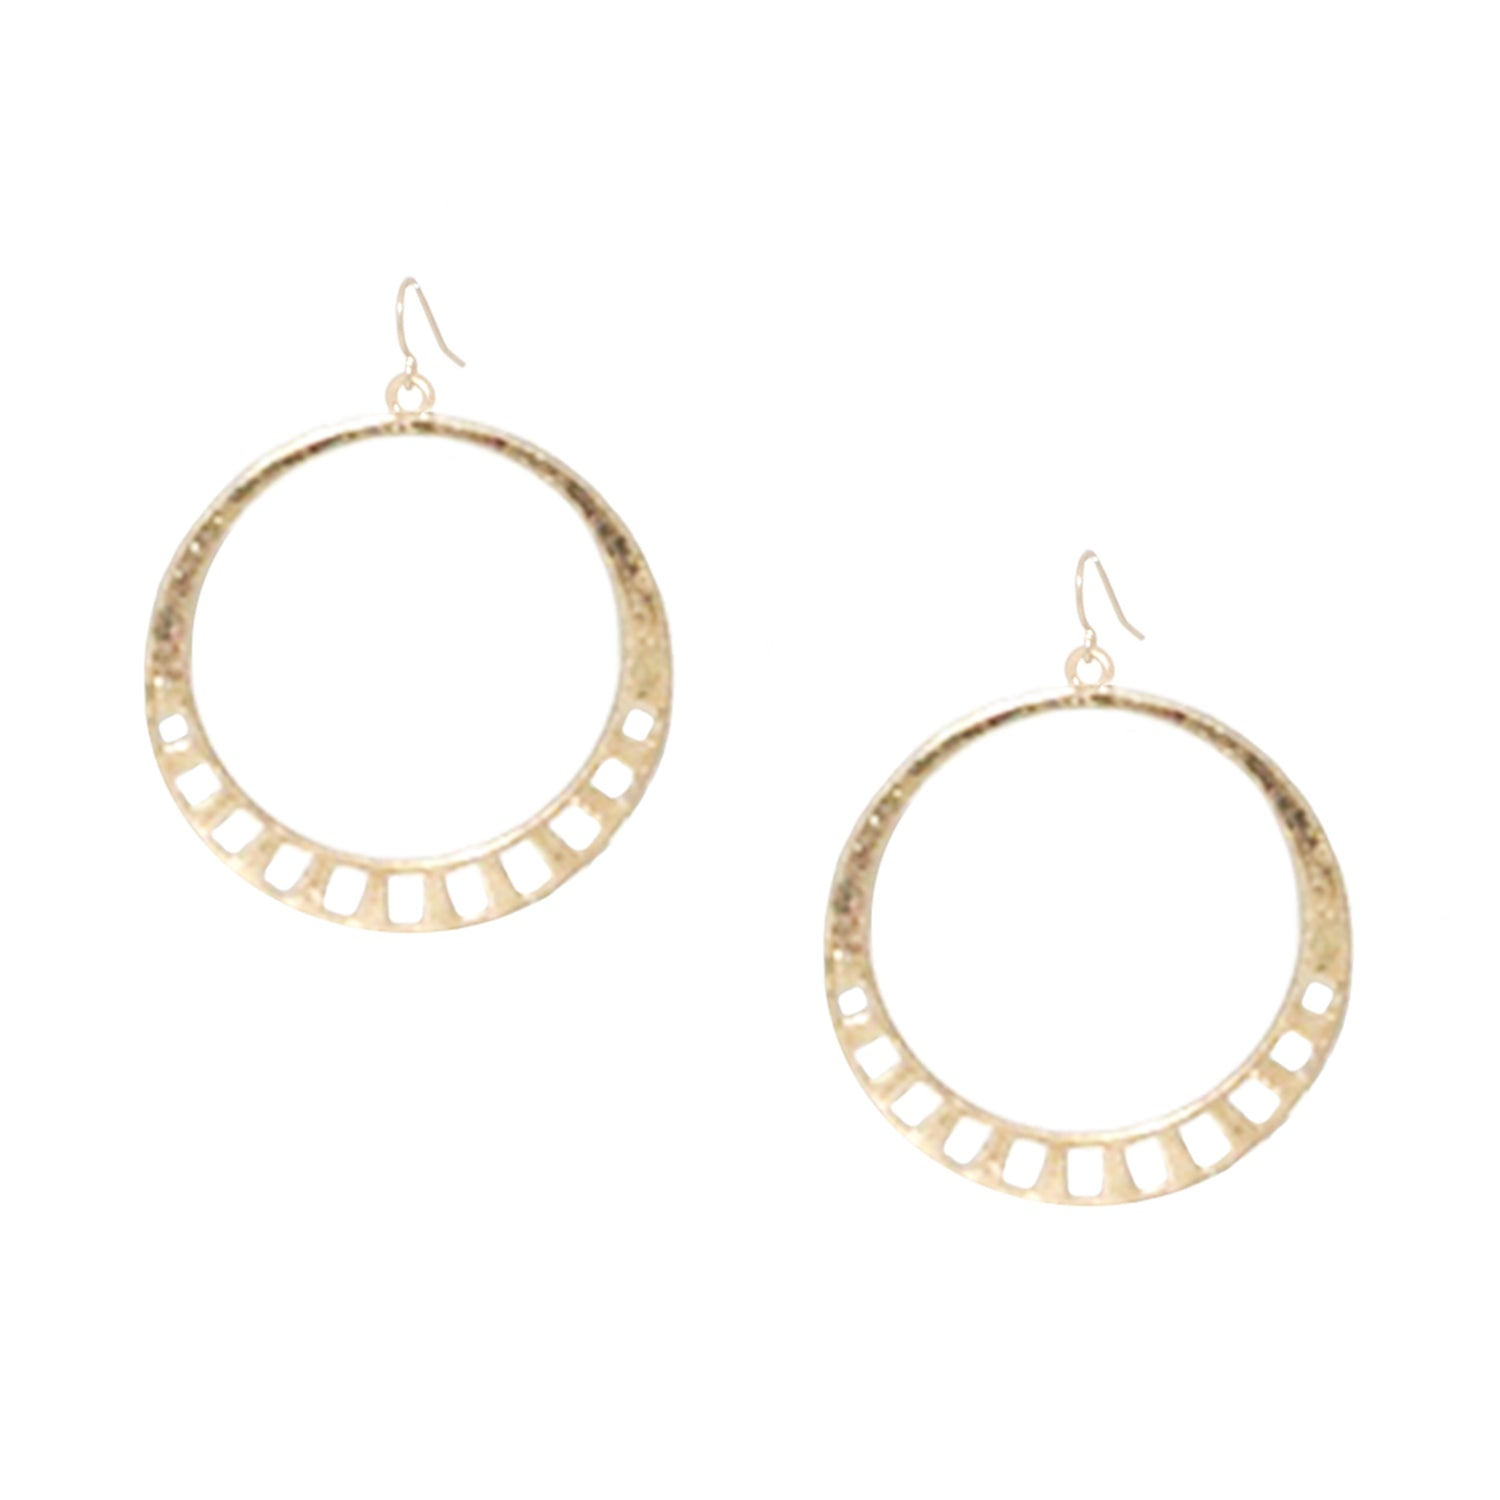 outfitters qlt redesign circle basic silver slide constrain hei fit sterling zoom view earrings gold earring hoop urban plated e shop